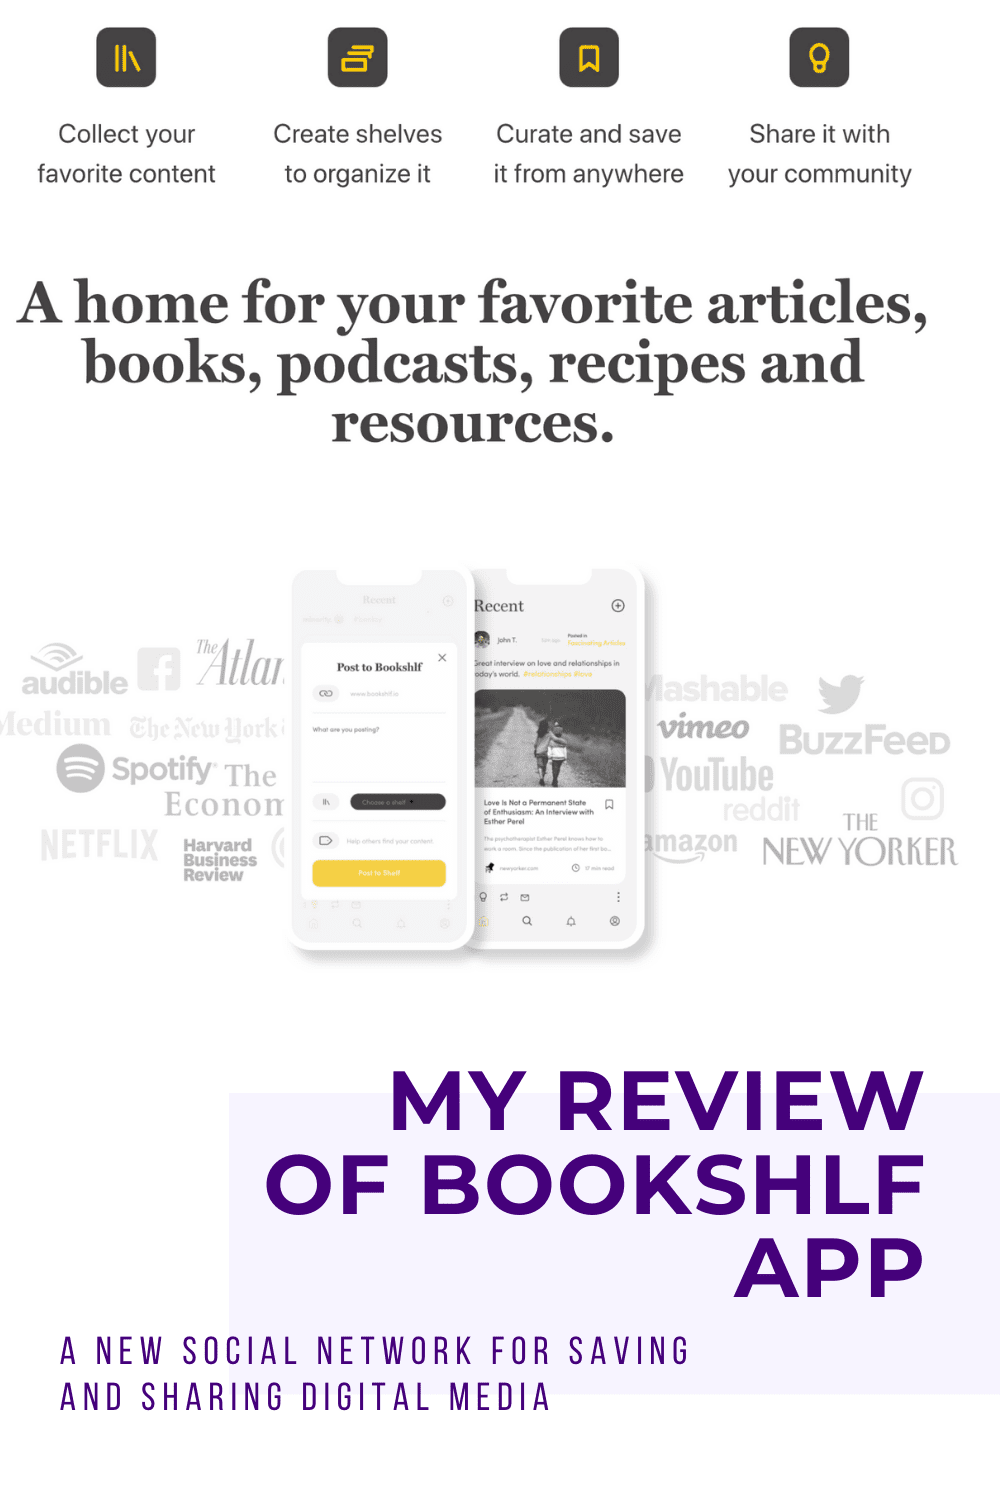 Bookshlf: A New App For Curating and Sharing Media